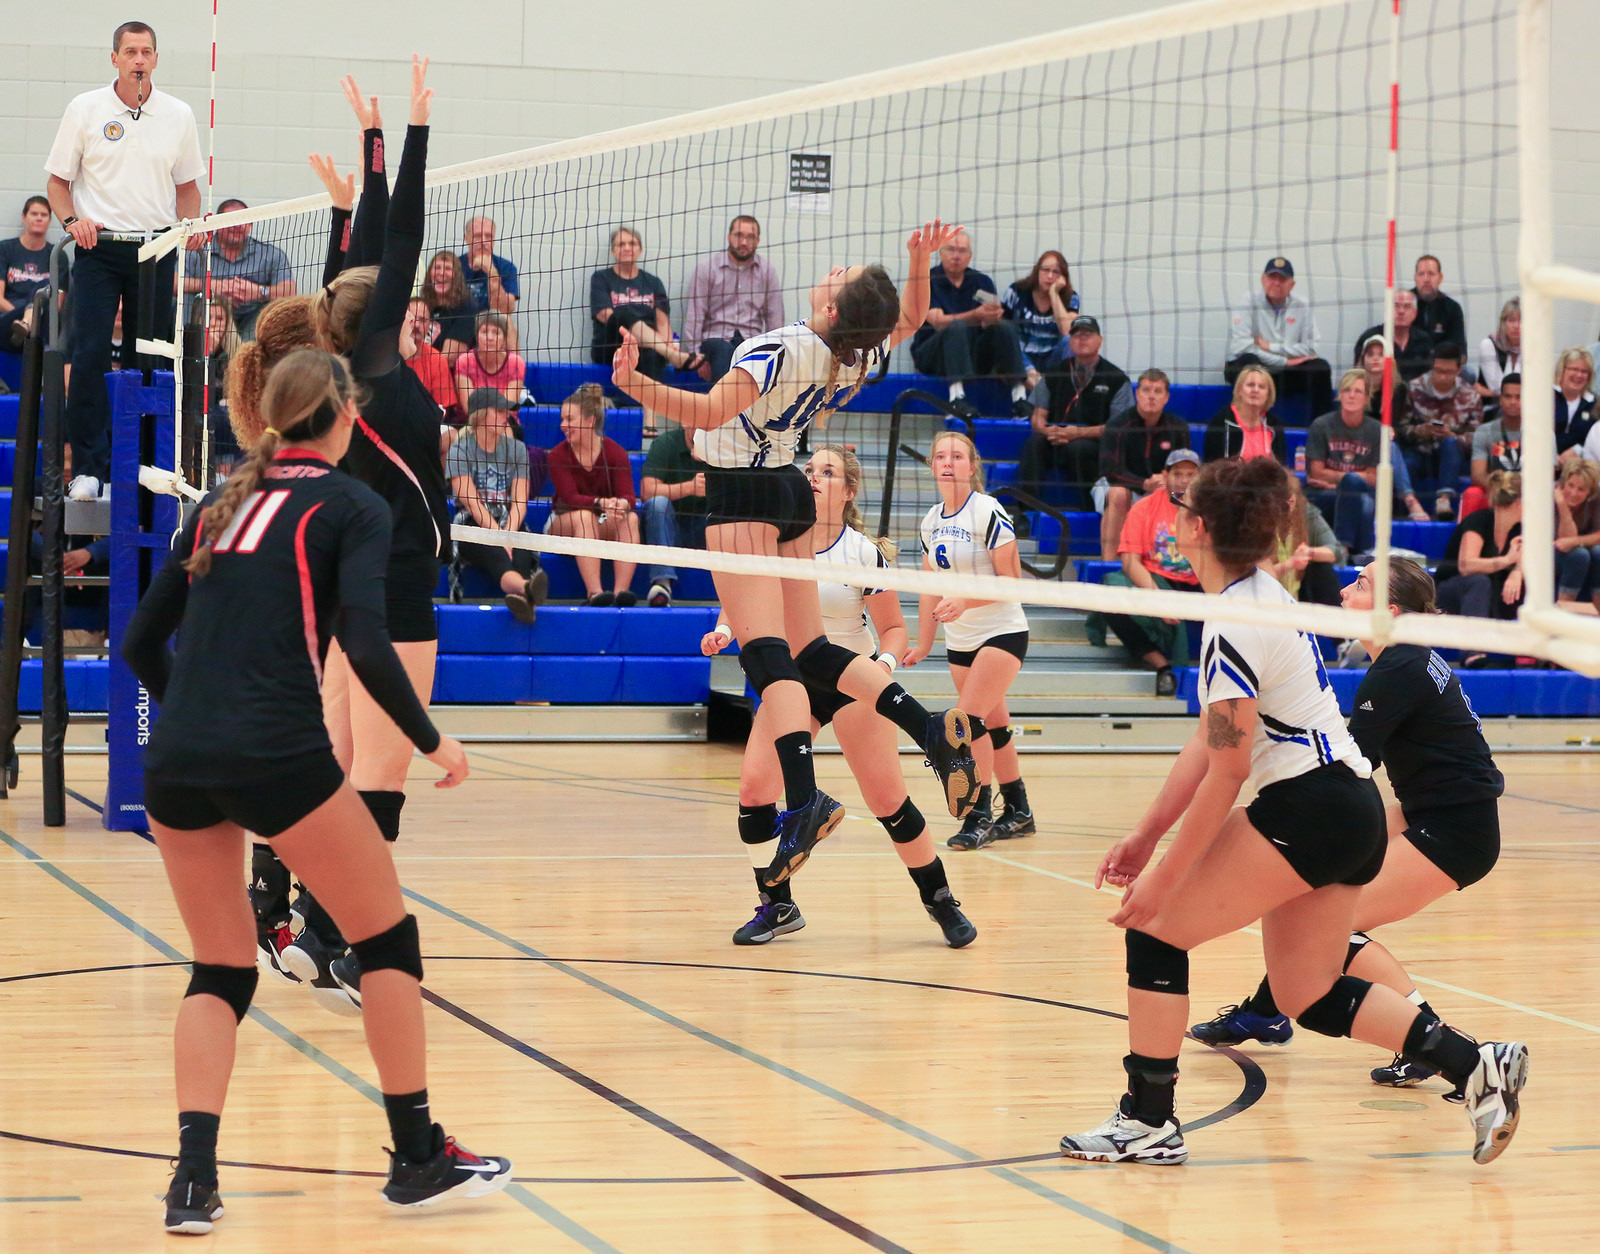 Blue Knights Volleyball Wins 2 Matches Over Weekend